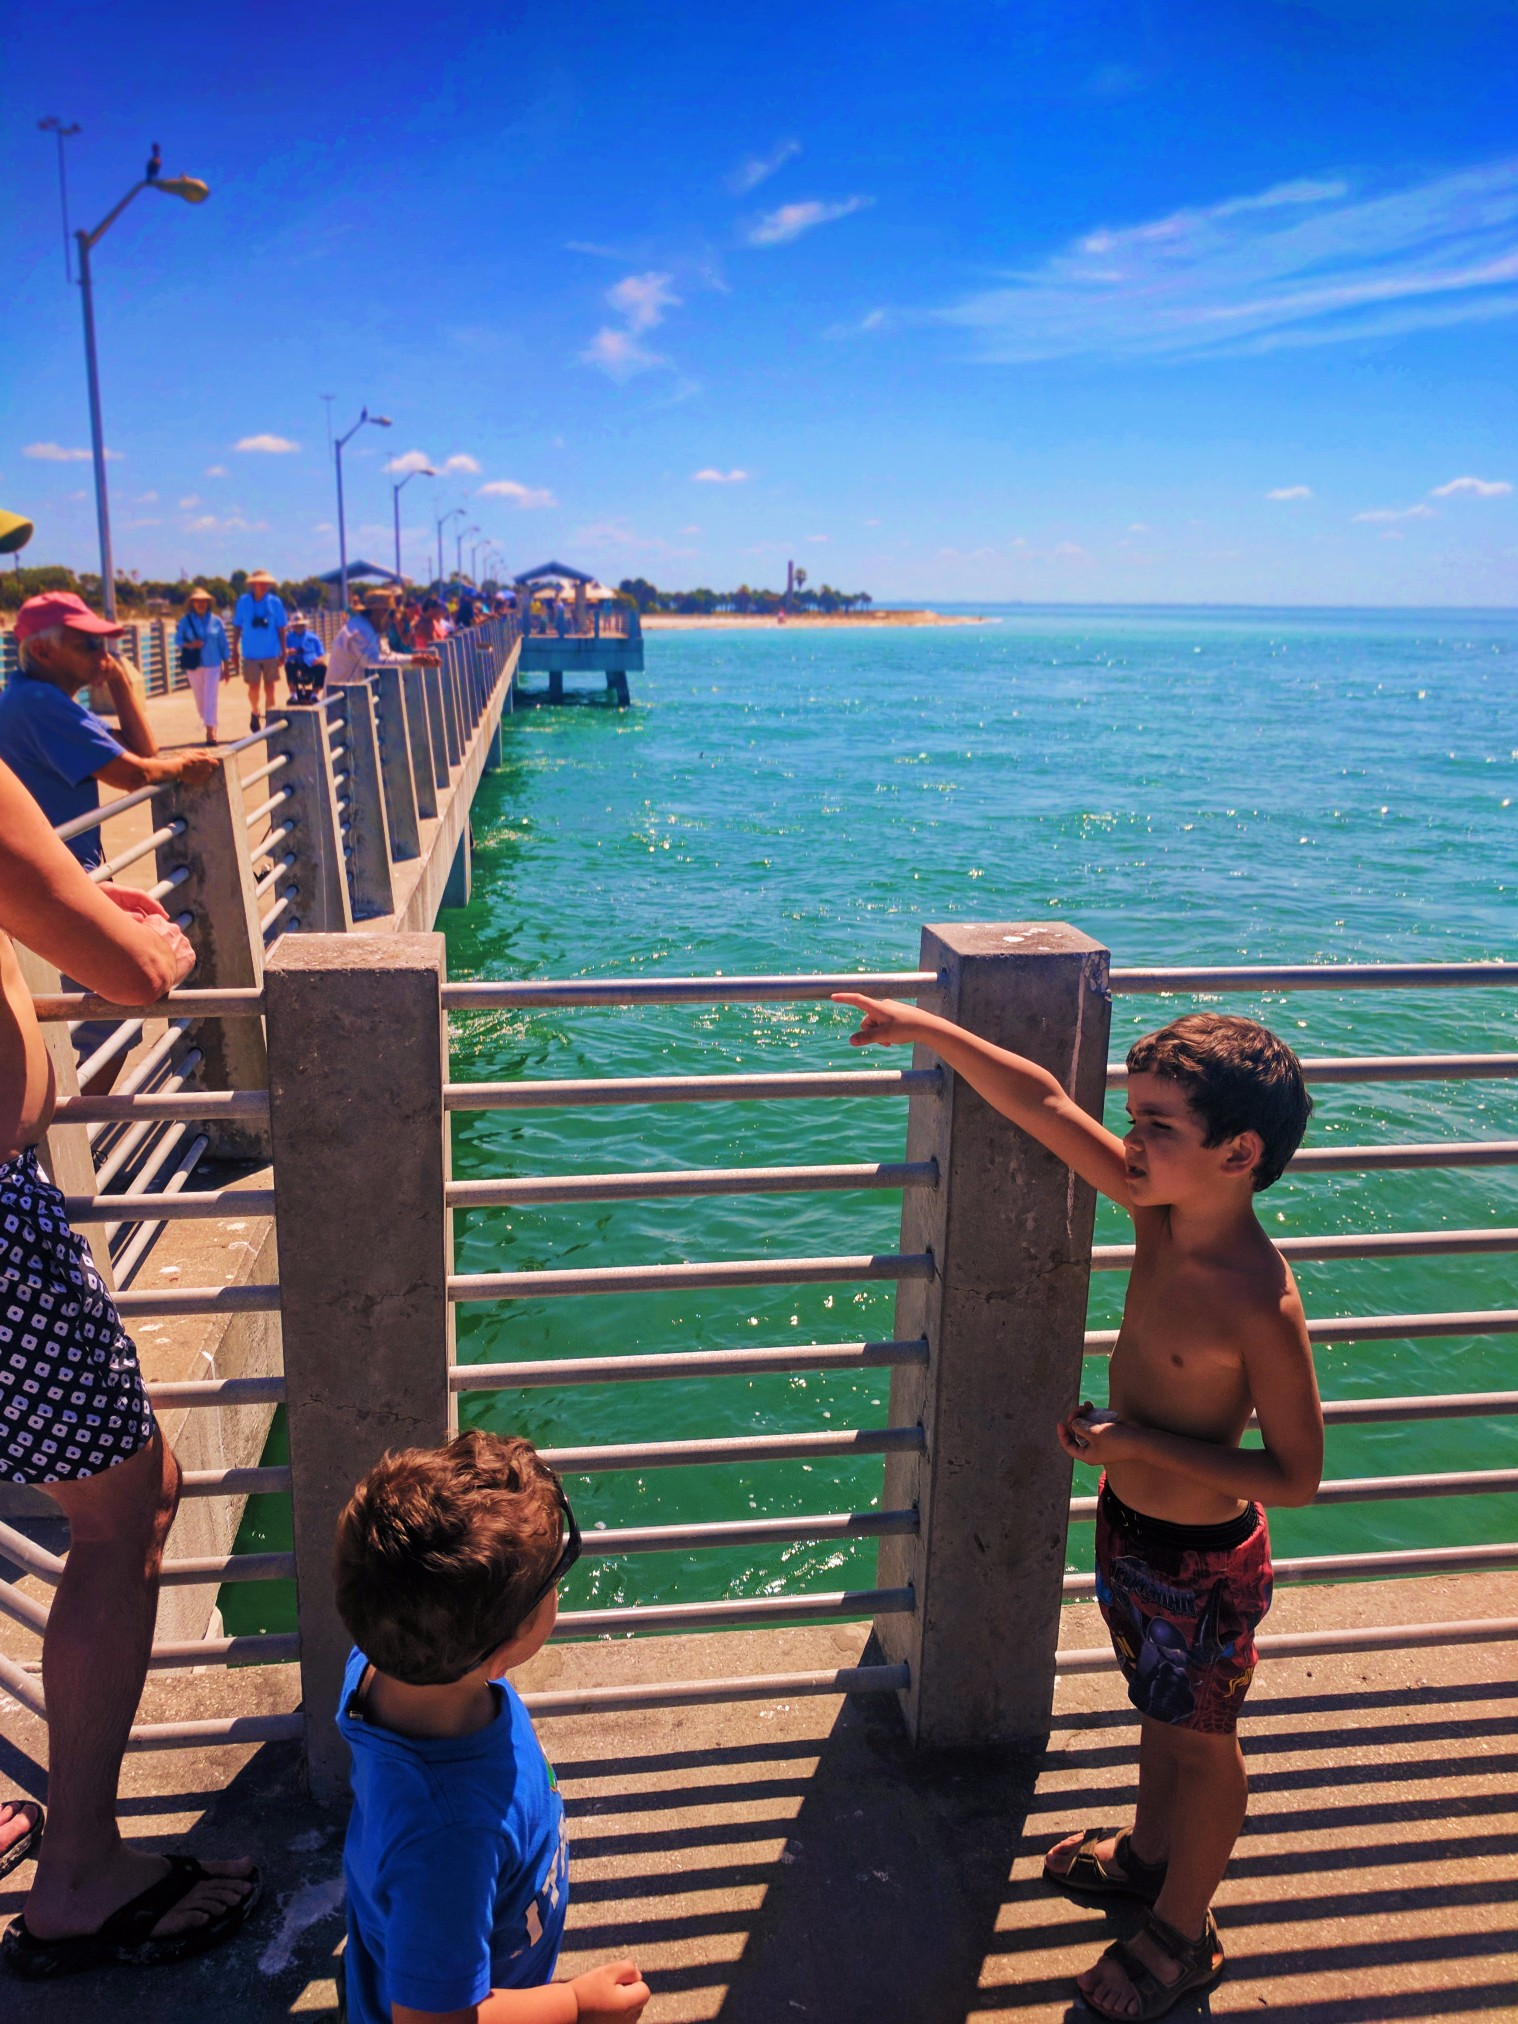 Taylor family on Pier at Fort De Soto Park Campground Pinellas County Florida 1